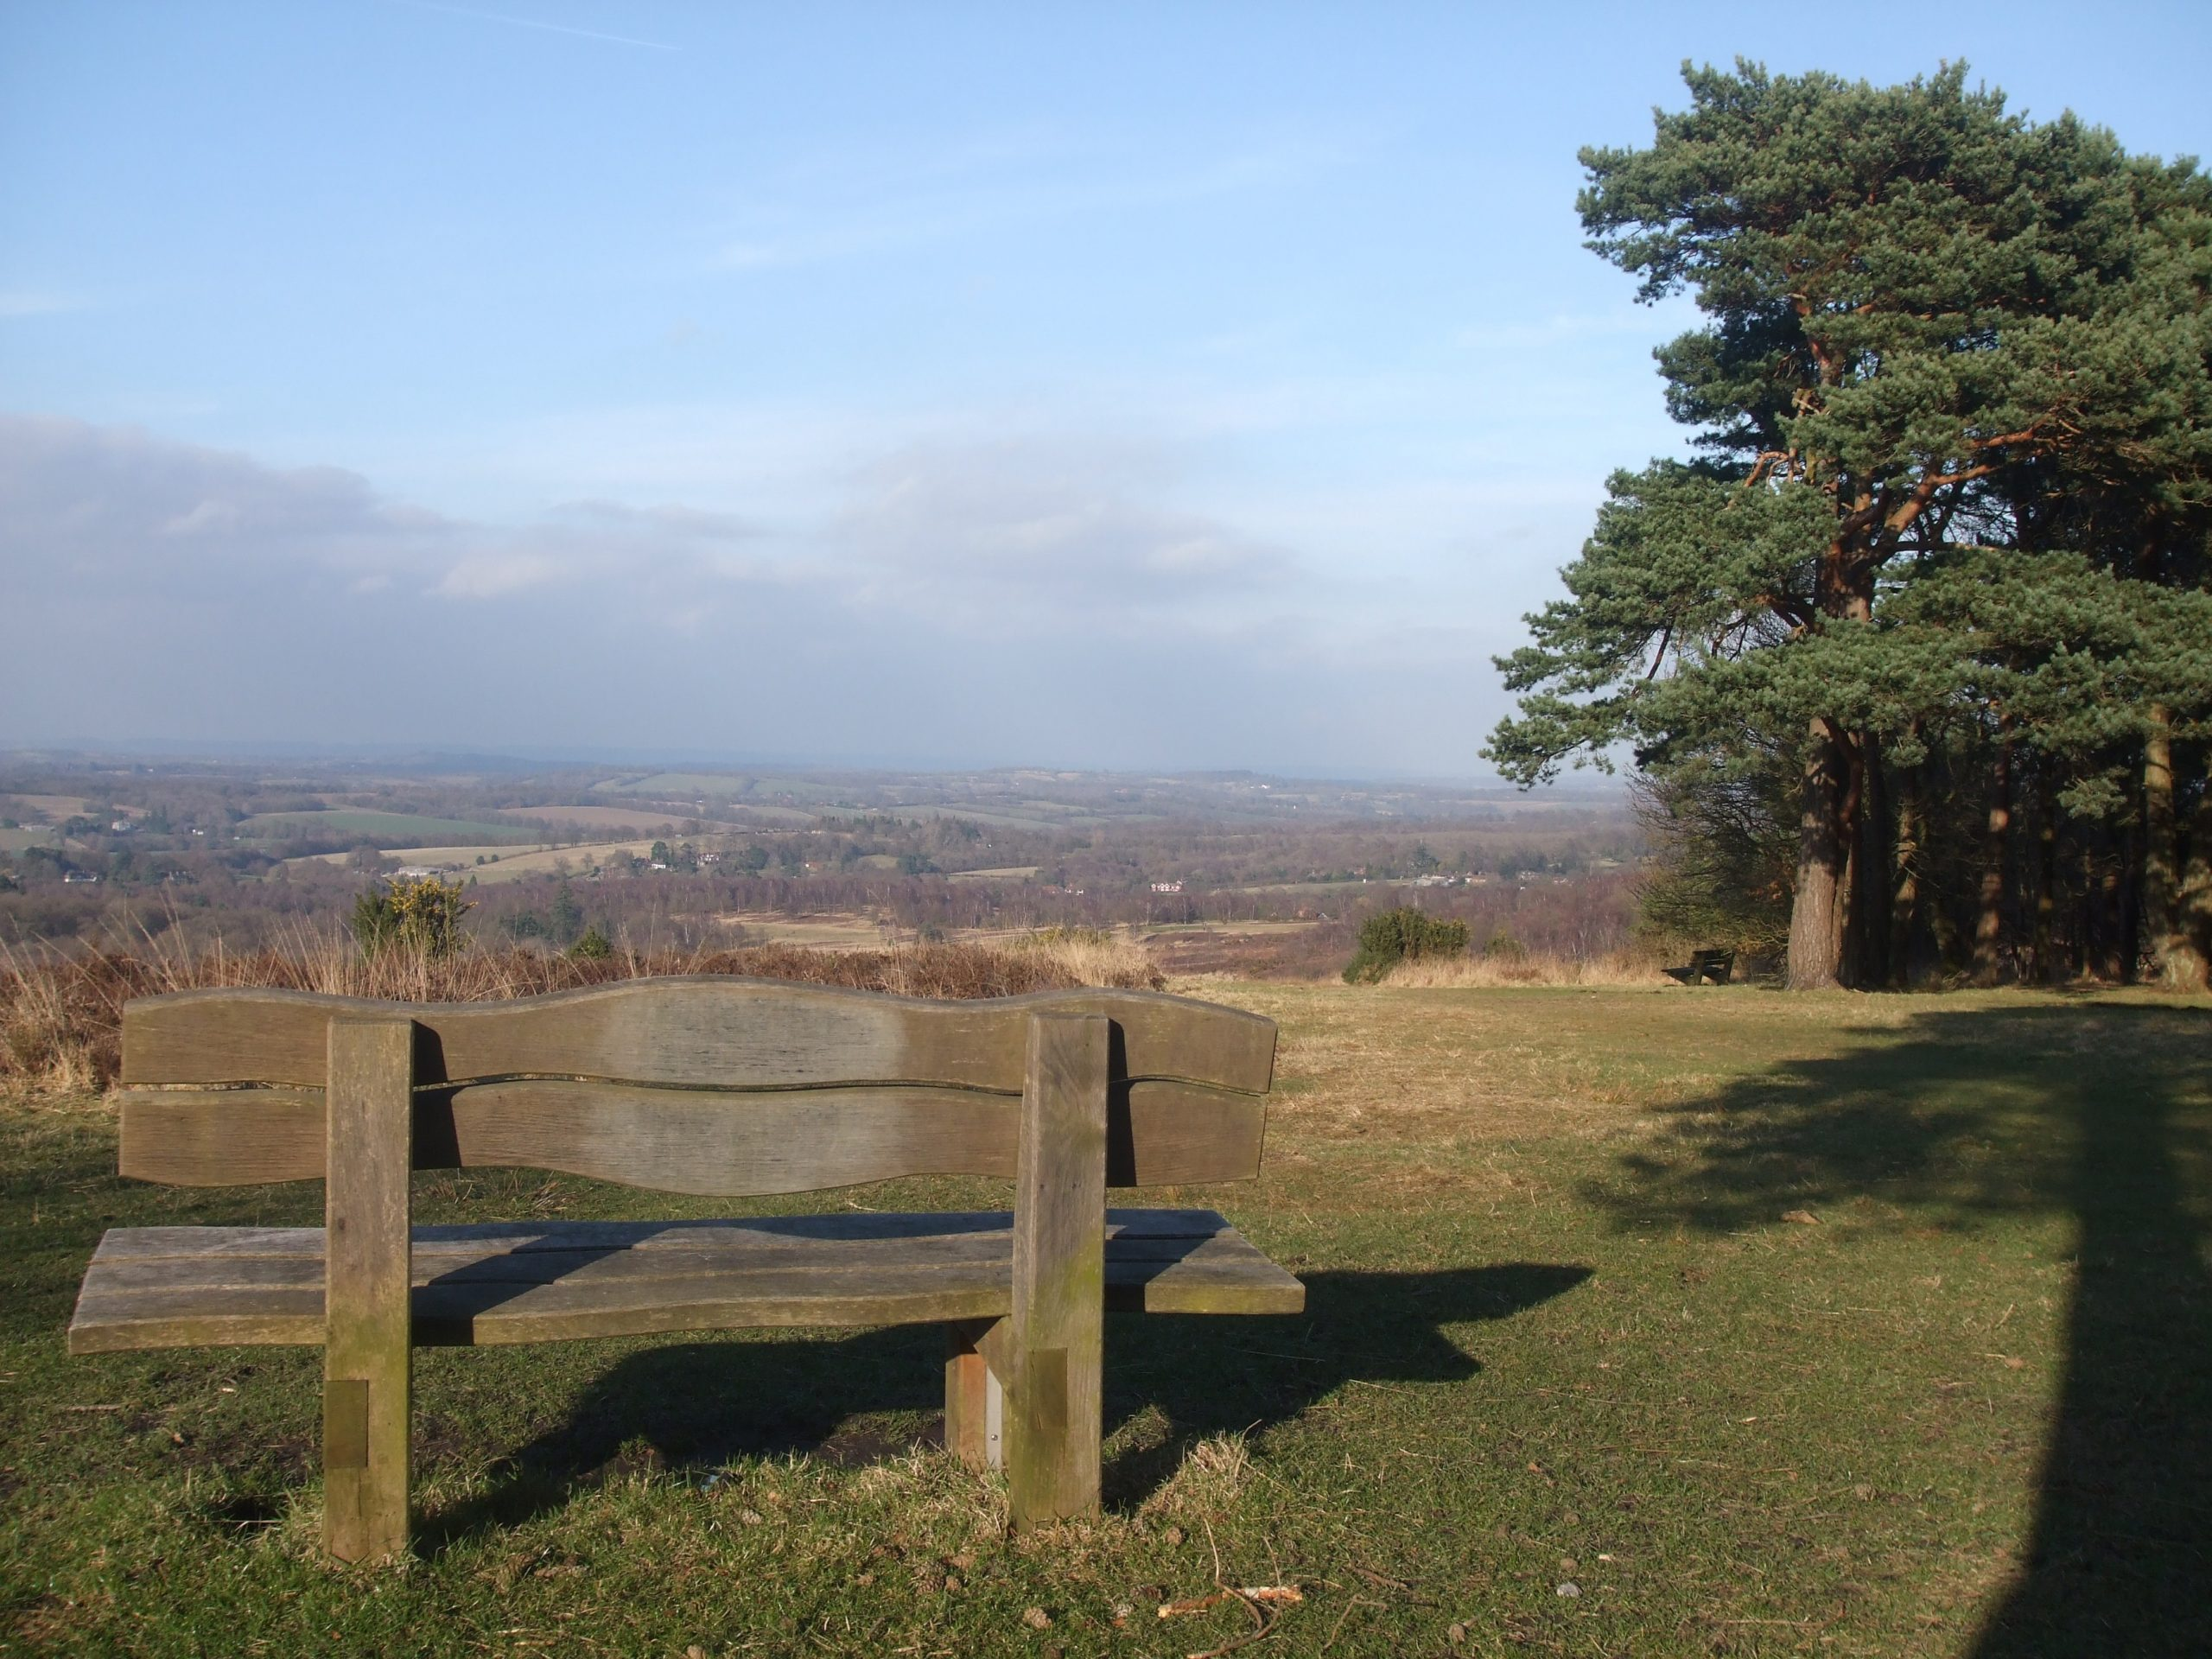 Parking Charges to be Introduced on Ashdown Forest?